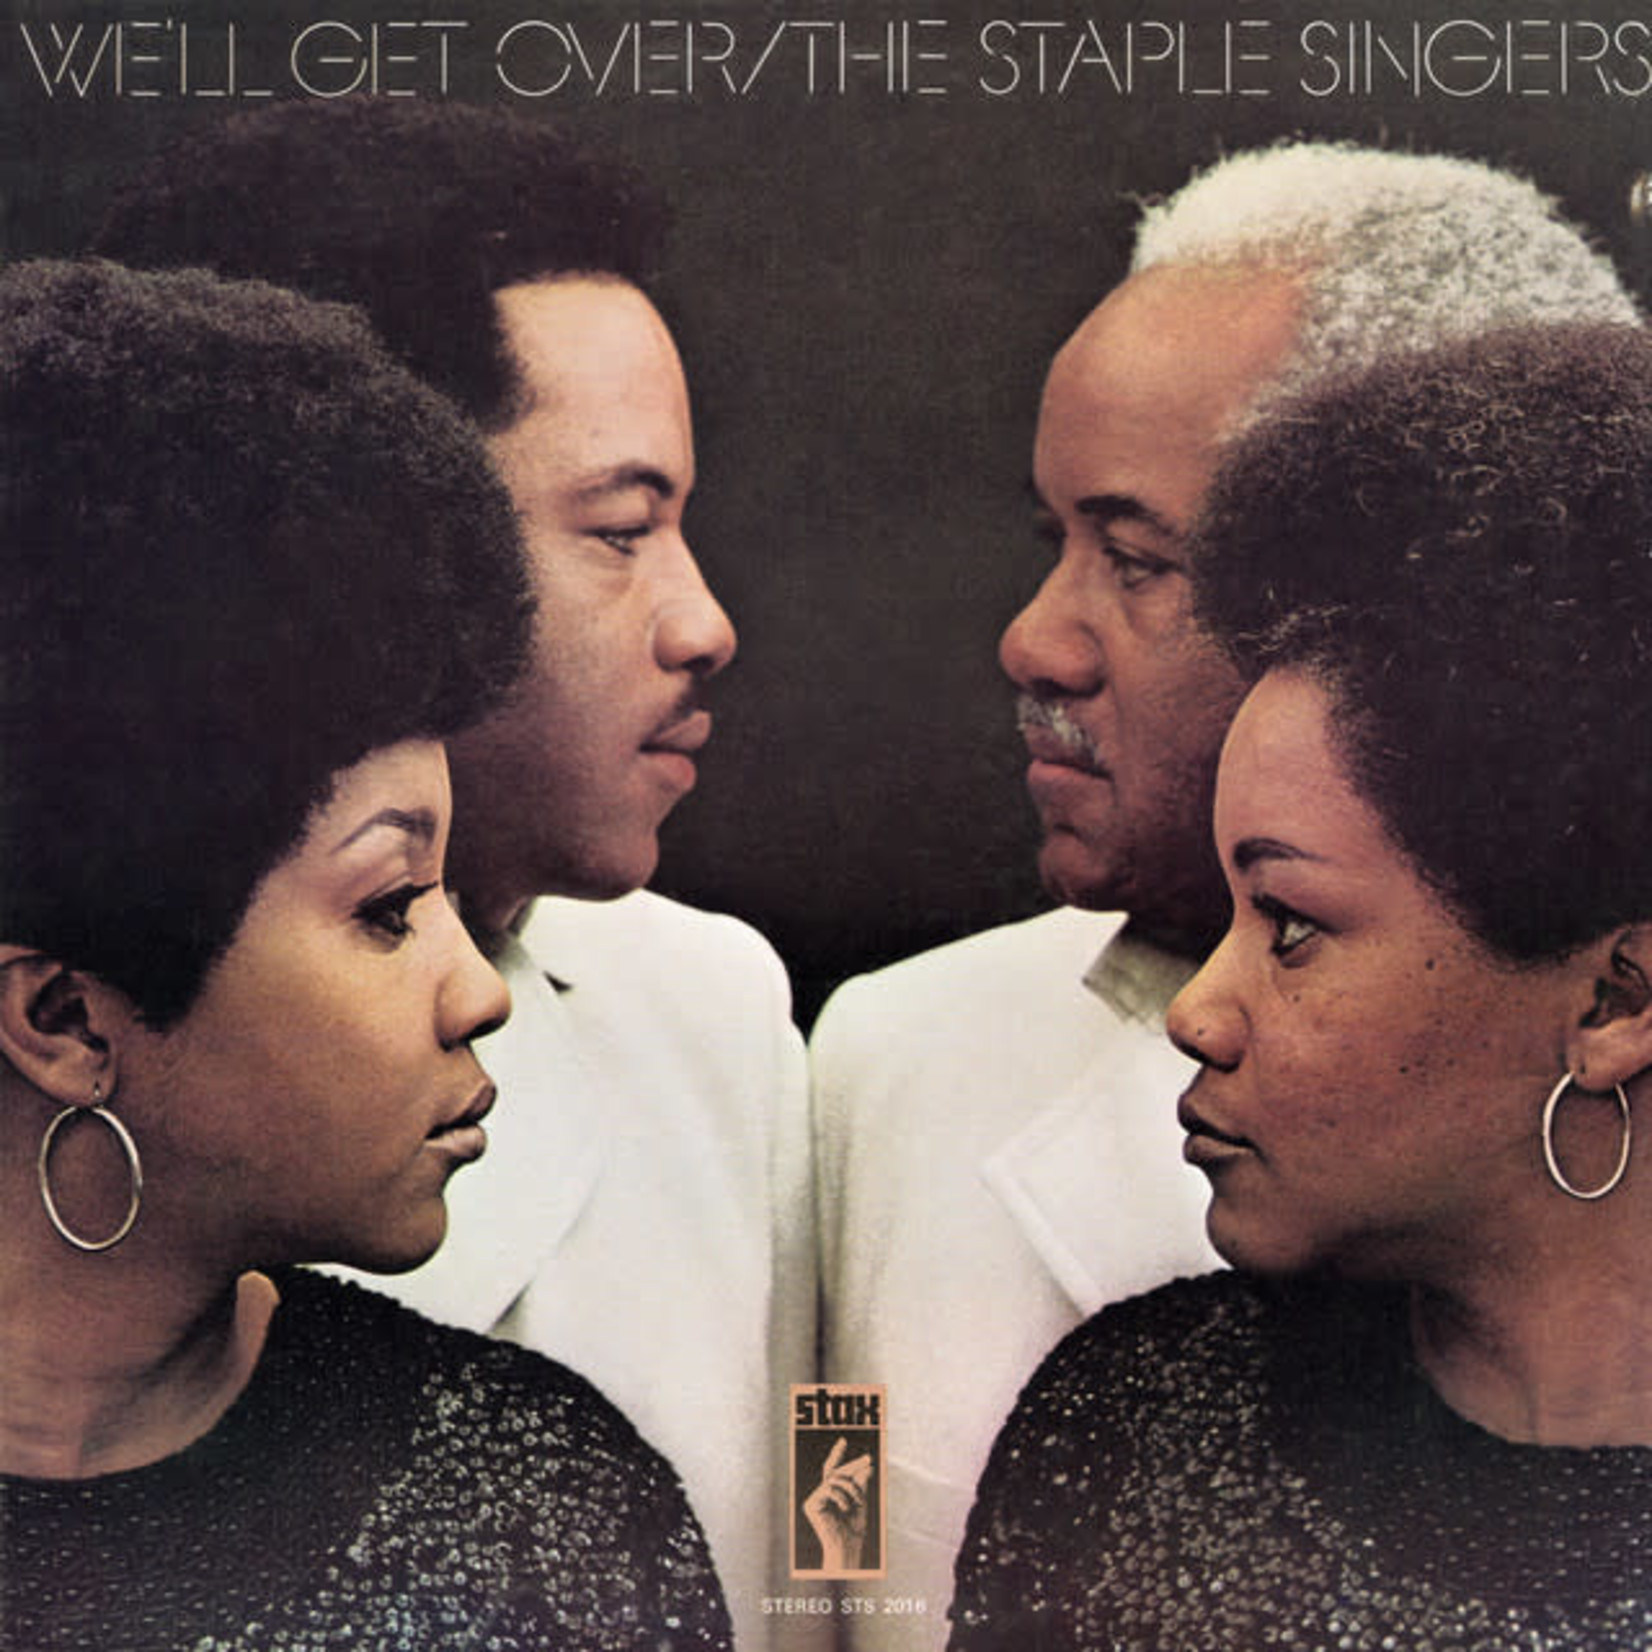 Vinyl The Staple Singers - We'll Get Over